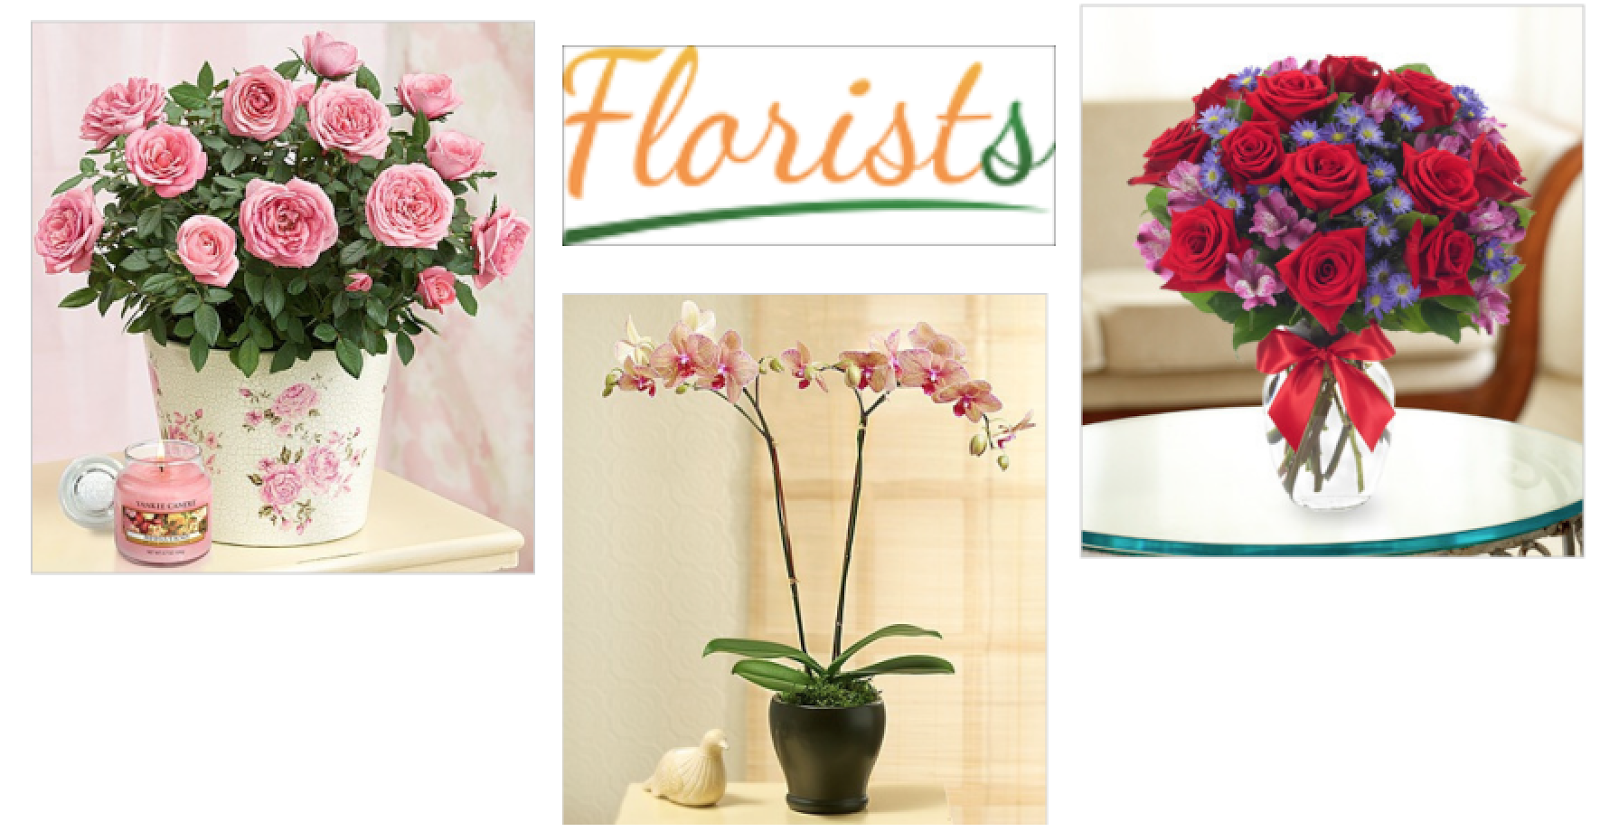 http://www.thebinderladies.com/2015/01/florists-com-awesome-selection-of.html